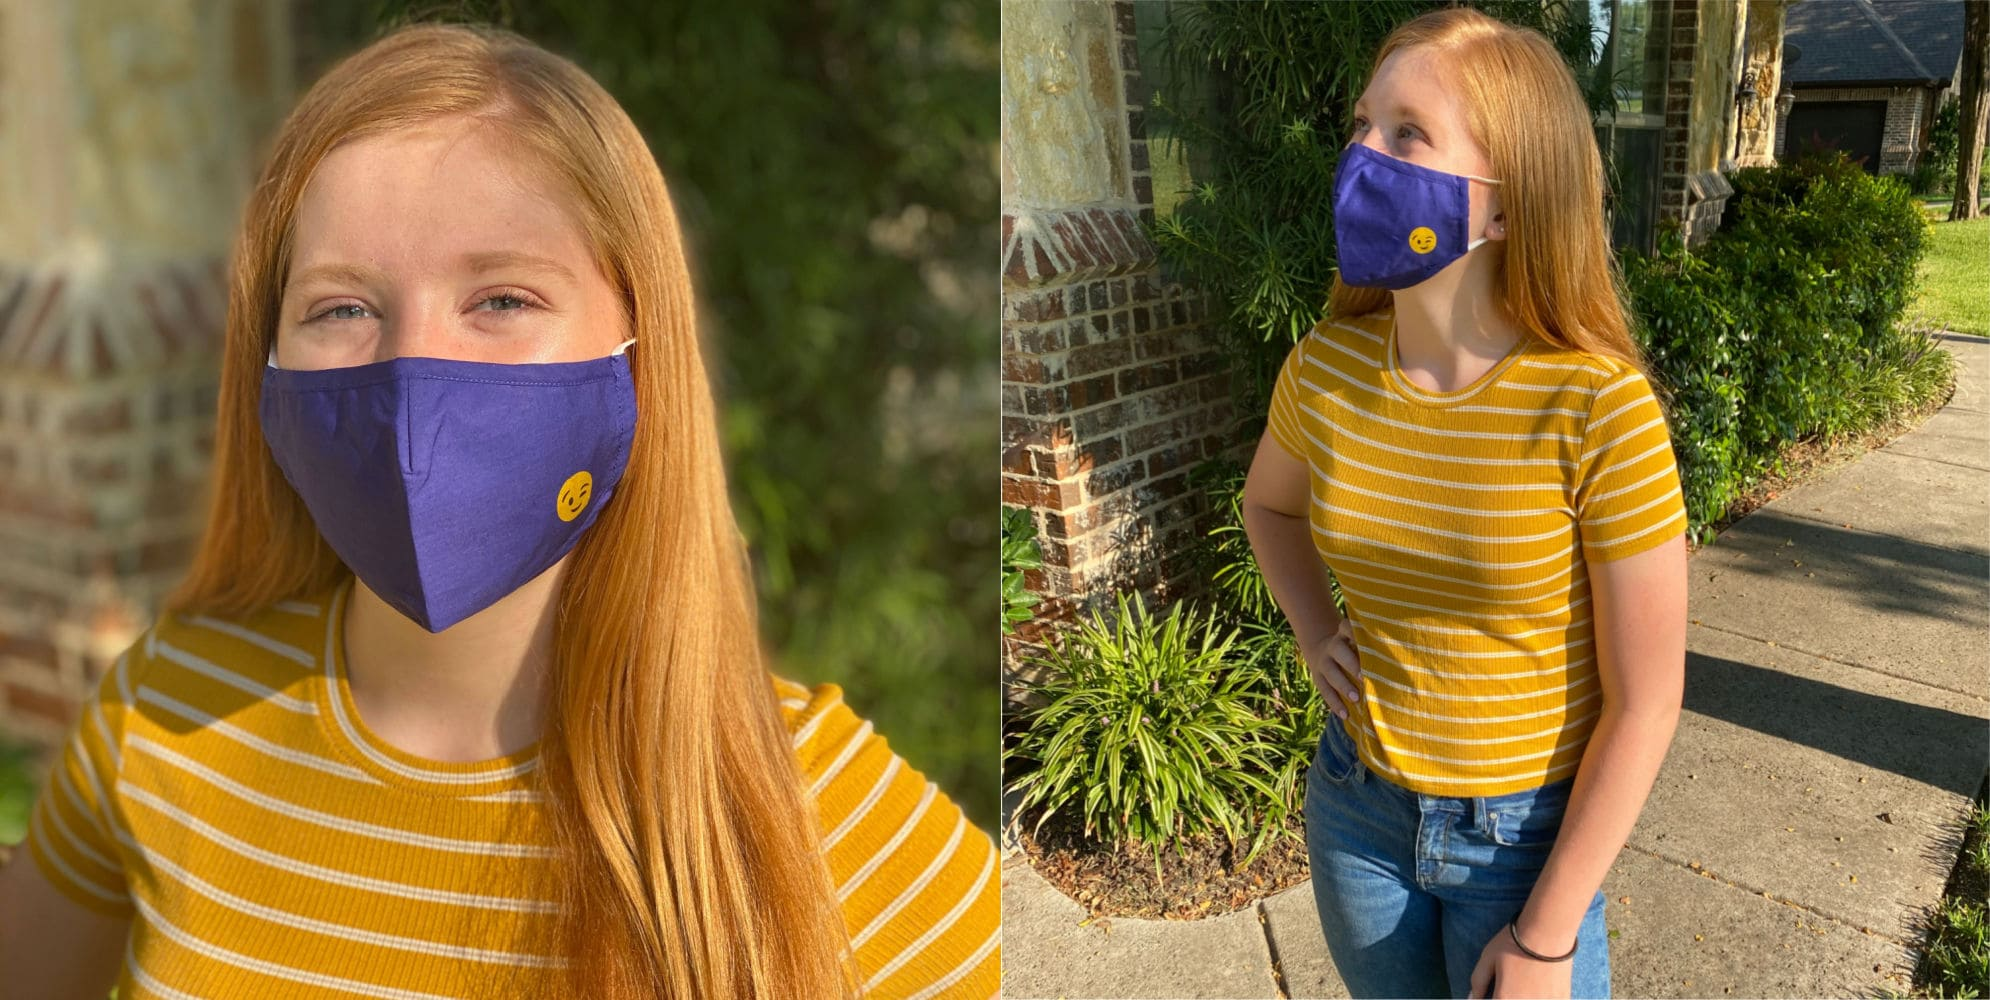 Teen wearing face mask from beau ties ltd